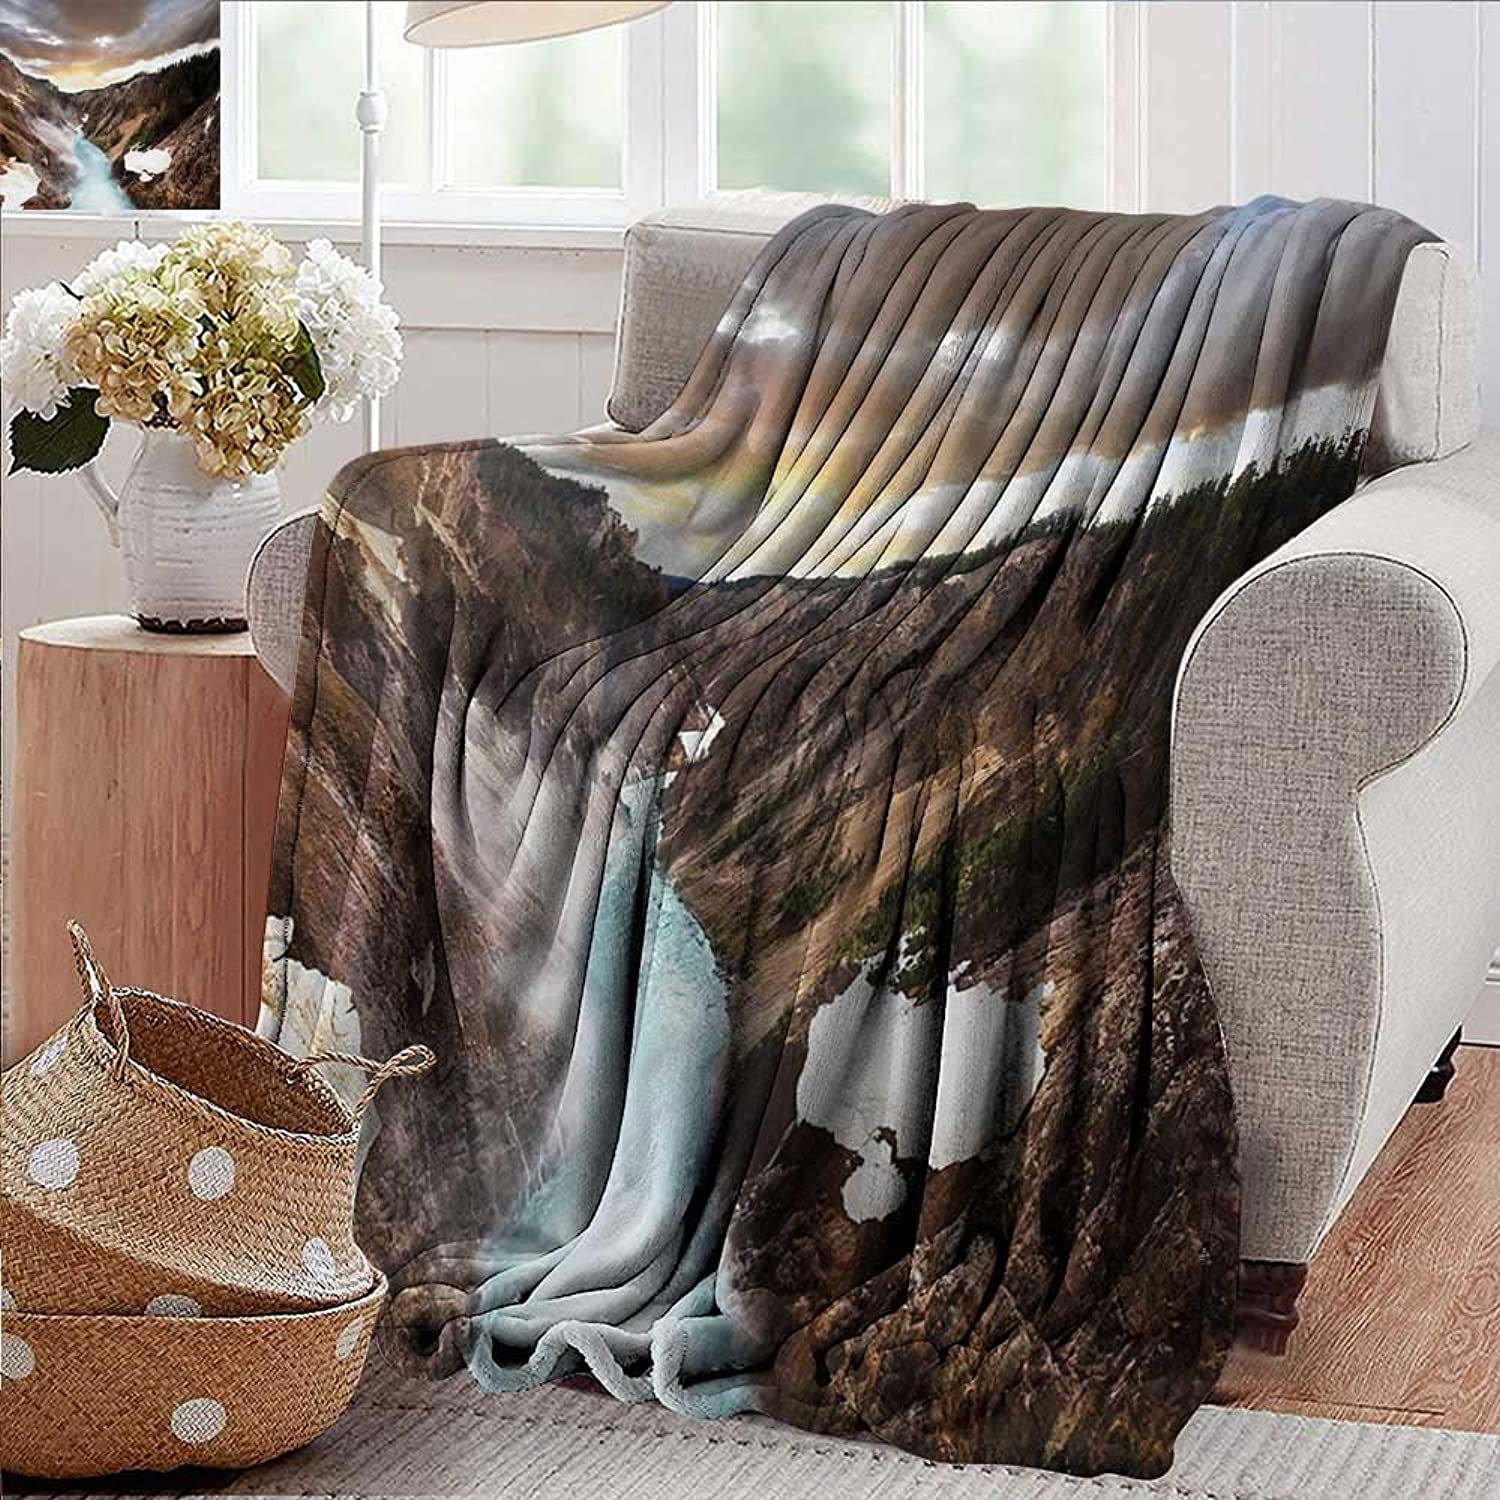 PearlRolan Weighted Blanket for Kids,Yellowstone,Canyon in Yellowstone Dramatic Sky Dark Clouds Setting Sun Landscape Scenic Photo,Brown,Weighted Blanket for Adults Kids, Better Deeper Sleep 50 x60